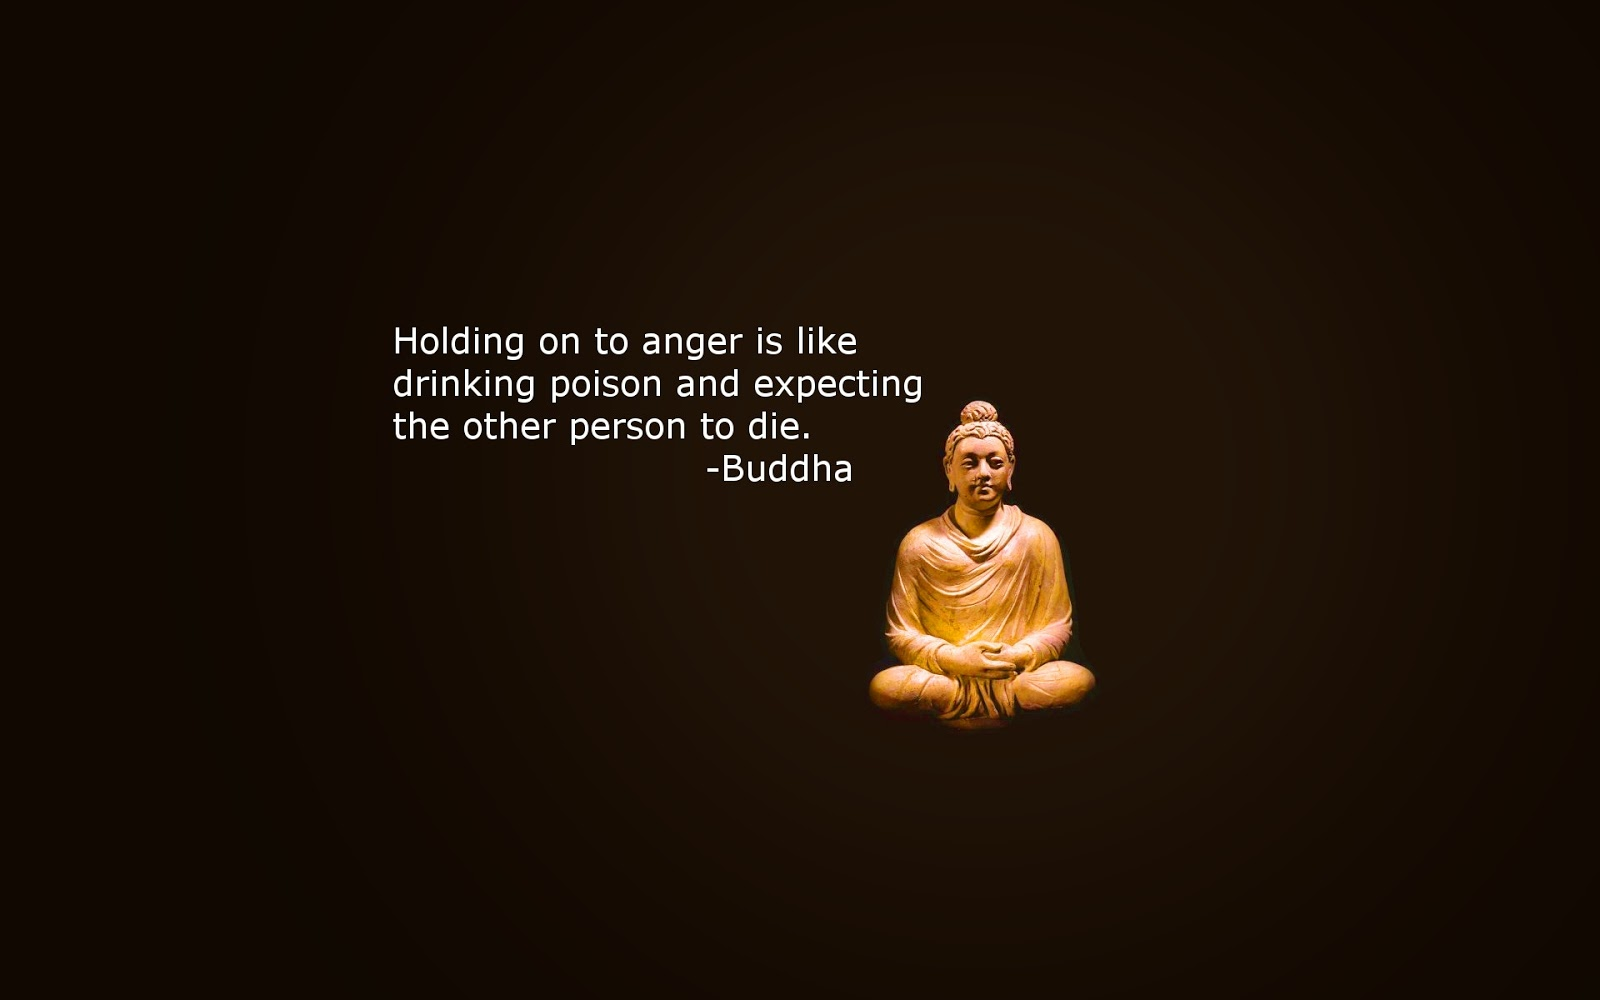 Buddha-quotes-on-anger-wallpaper-picture-image.jpg